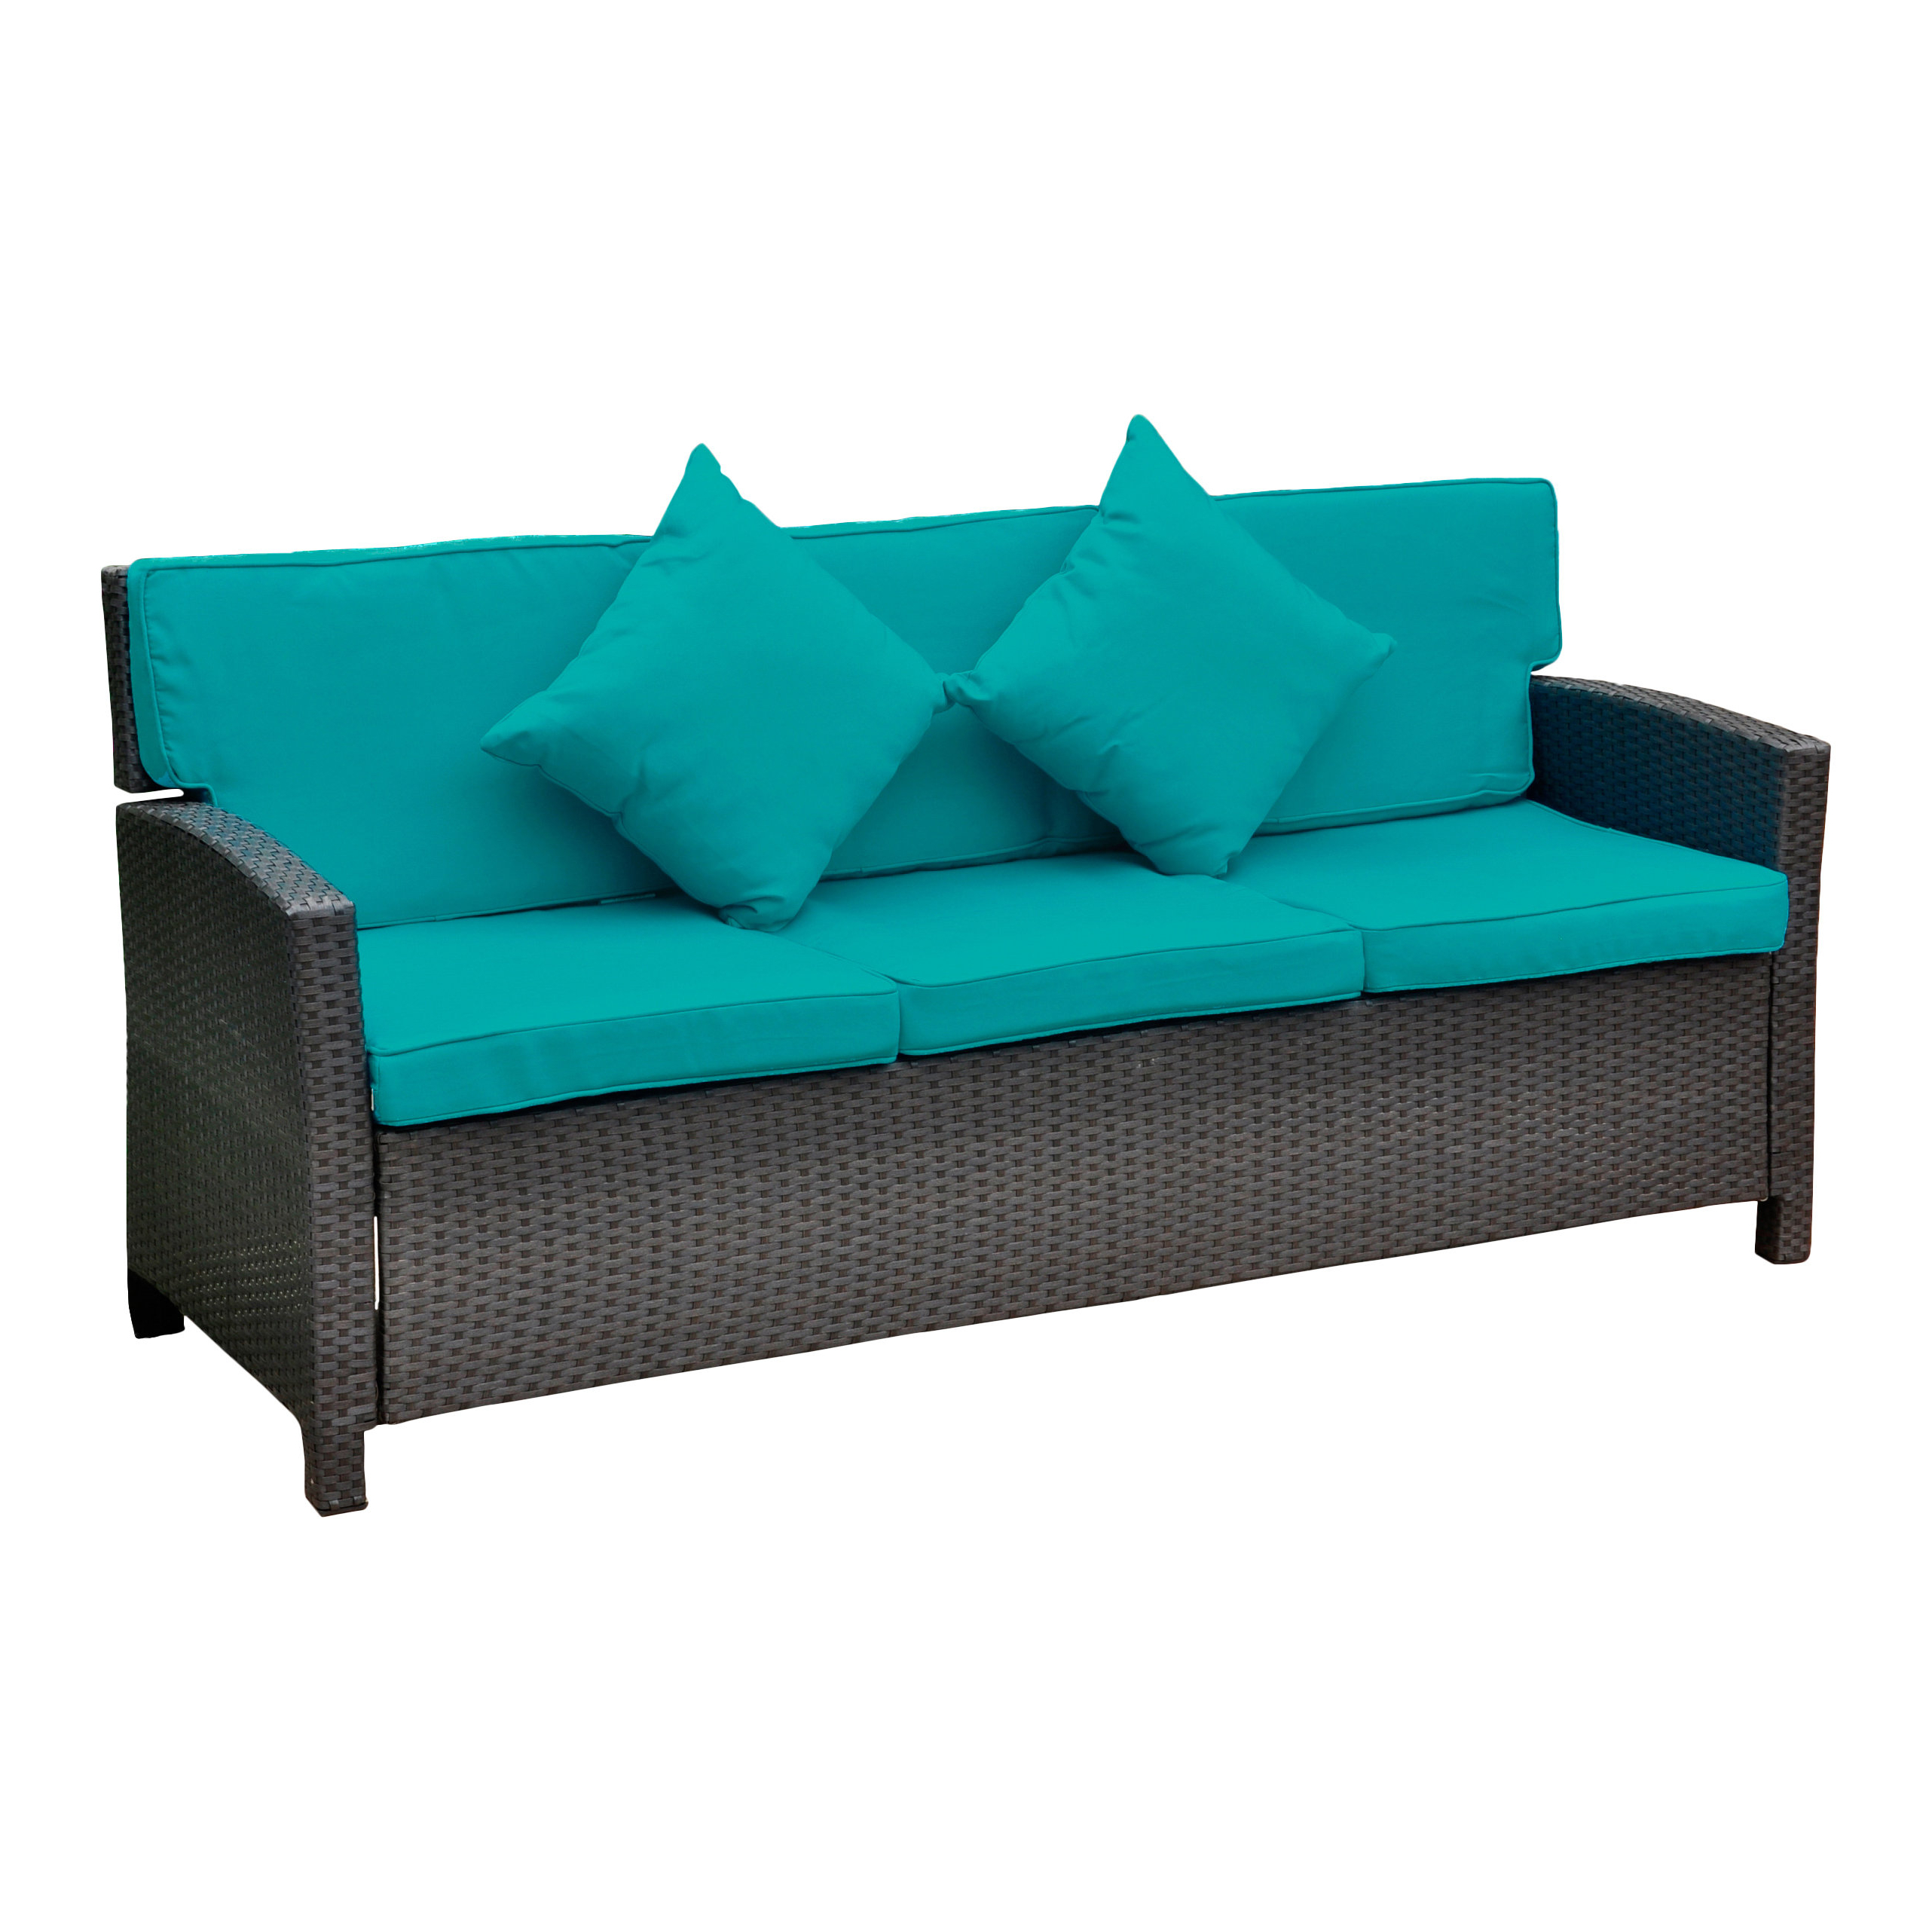 Widely Used Charlton Home Stapleton Wicker Resin Sofa With Cushions In Stapleton Wicker Resin Patio Sofas With Cushions (View 20 of 20)